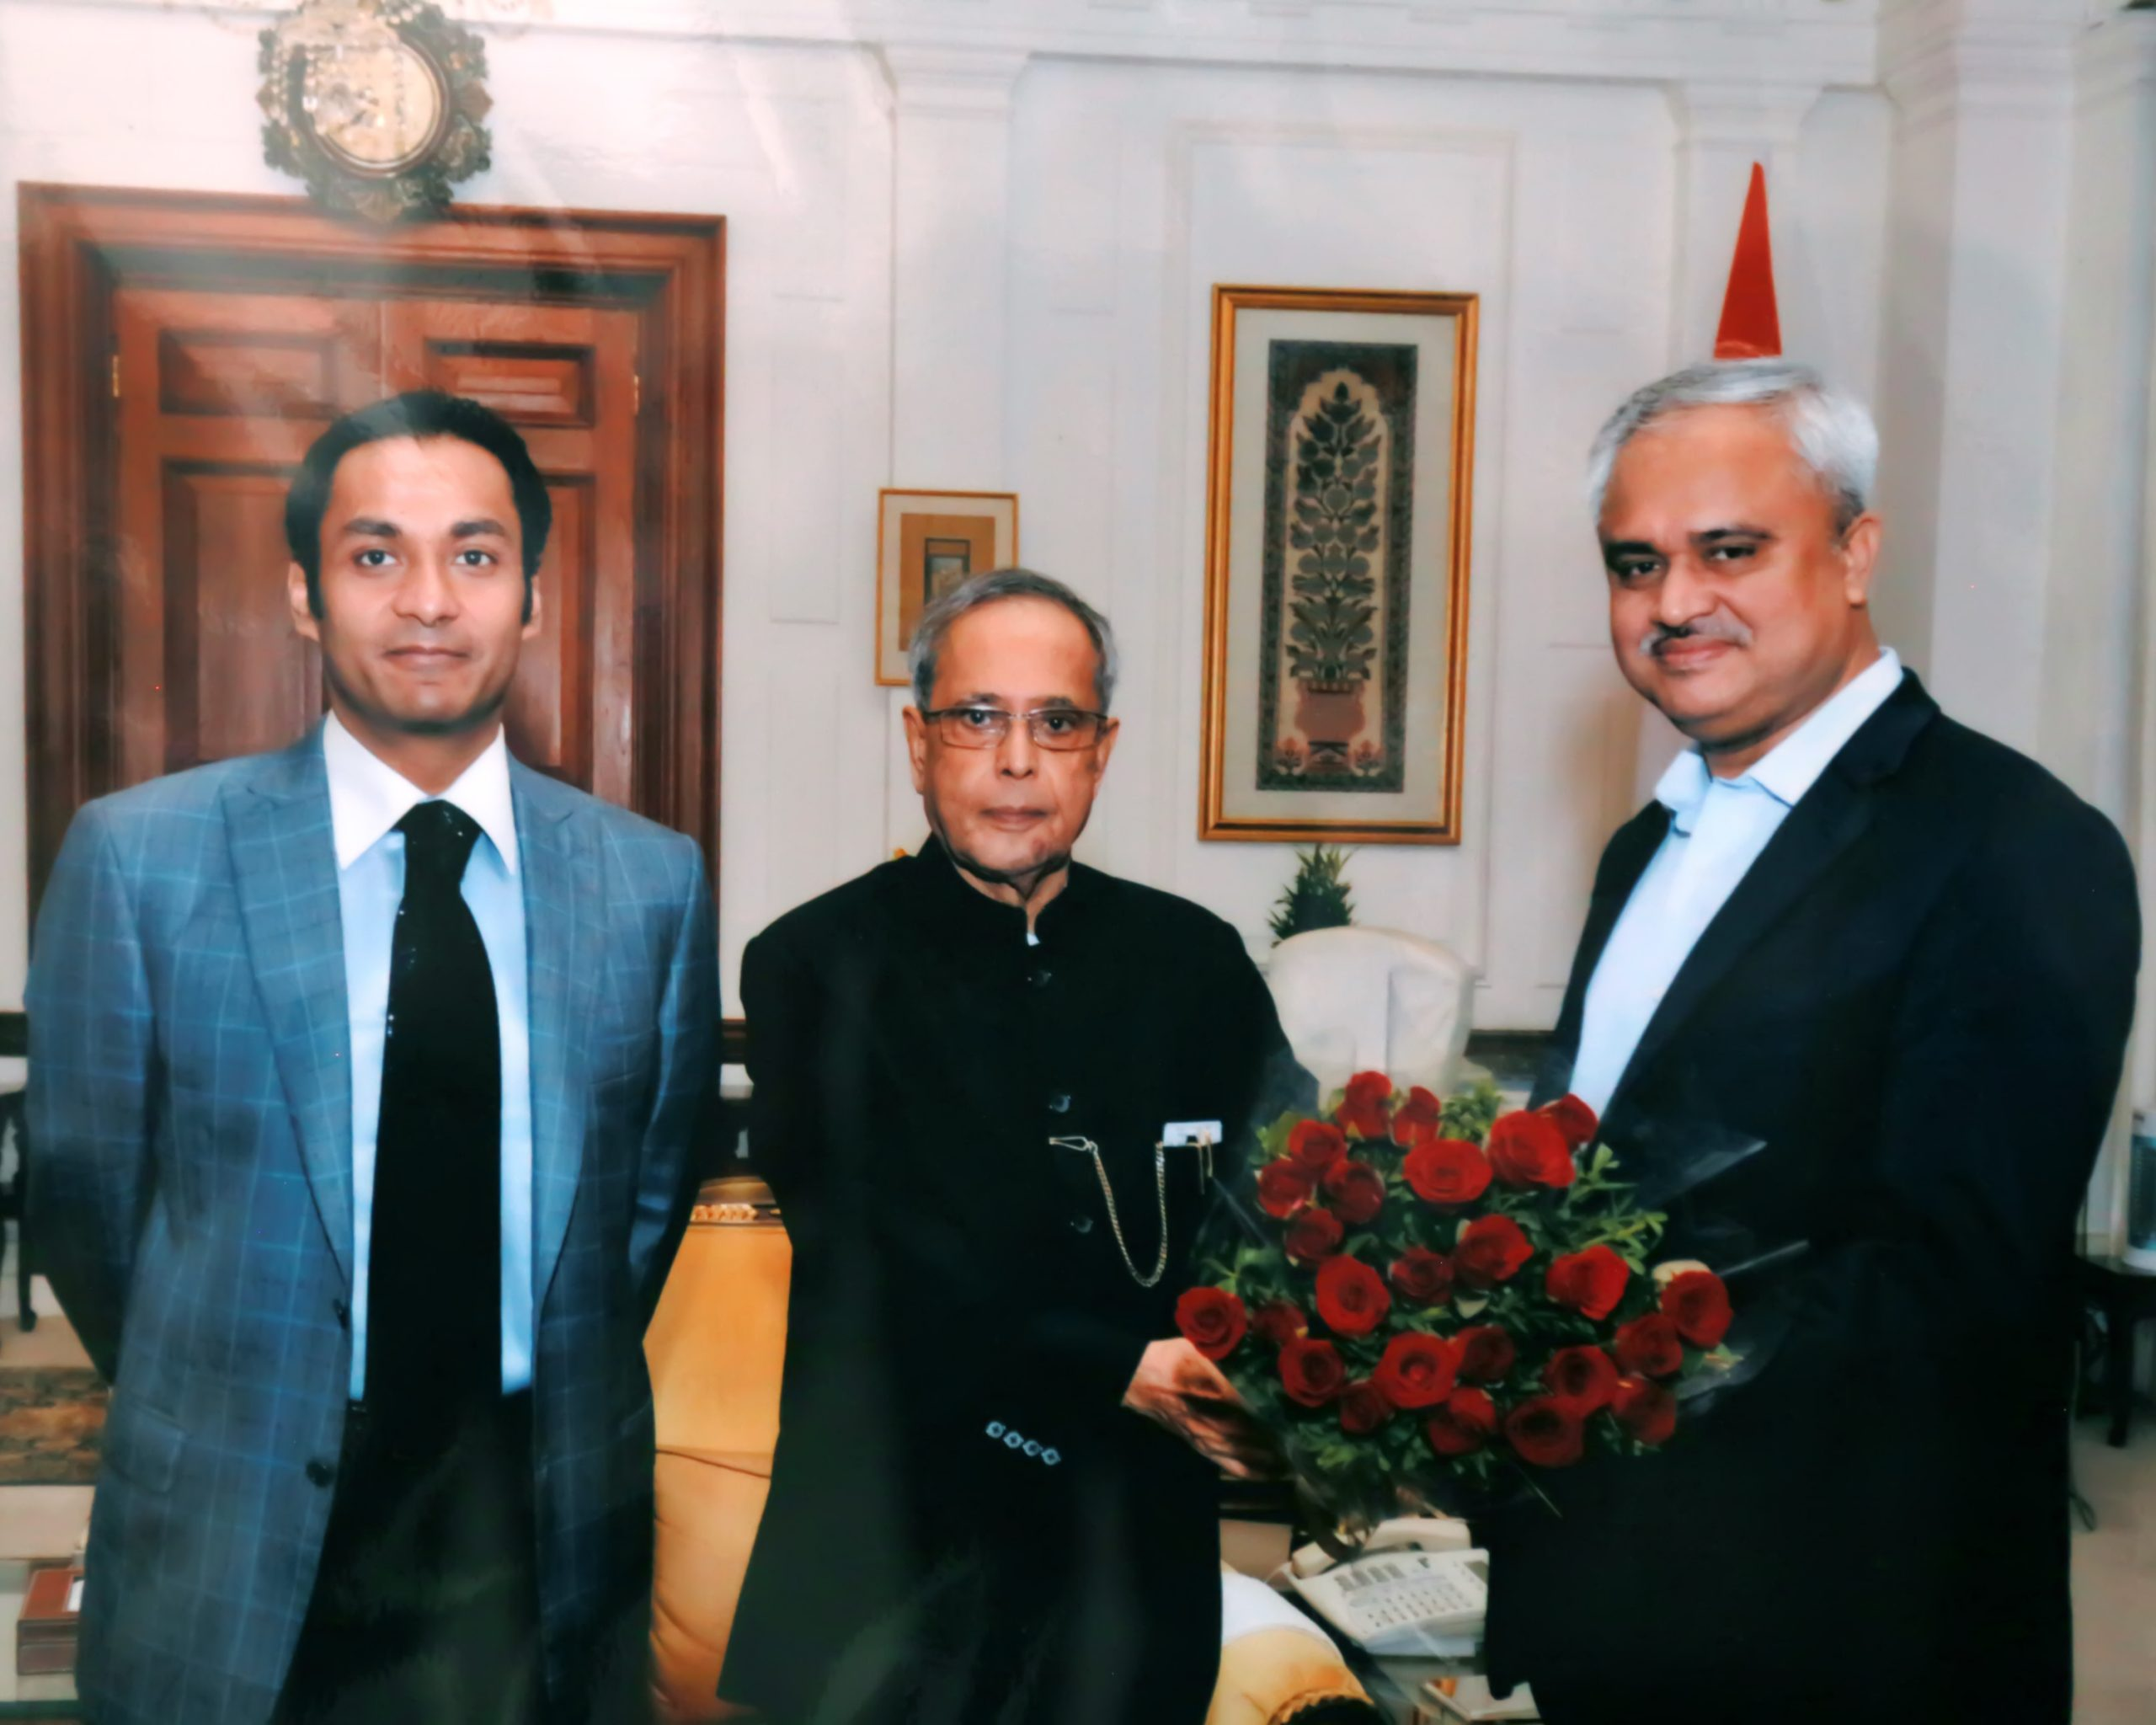 With Honorable president of india Mr Pranab Mukherjee